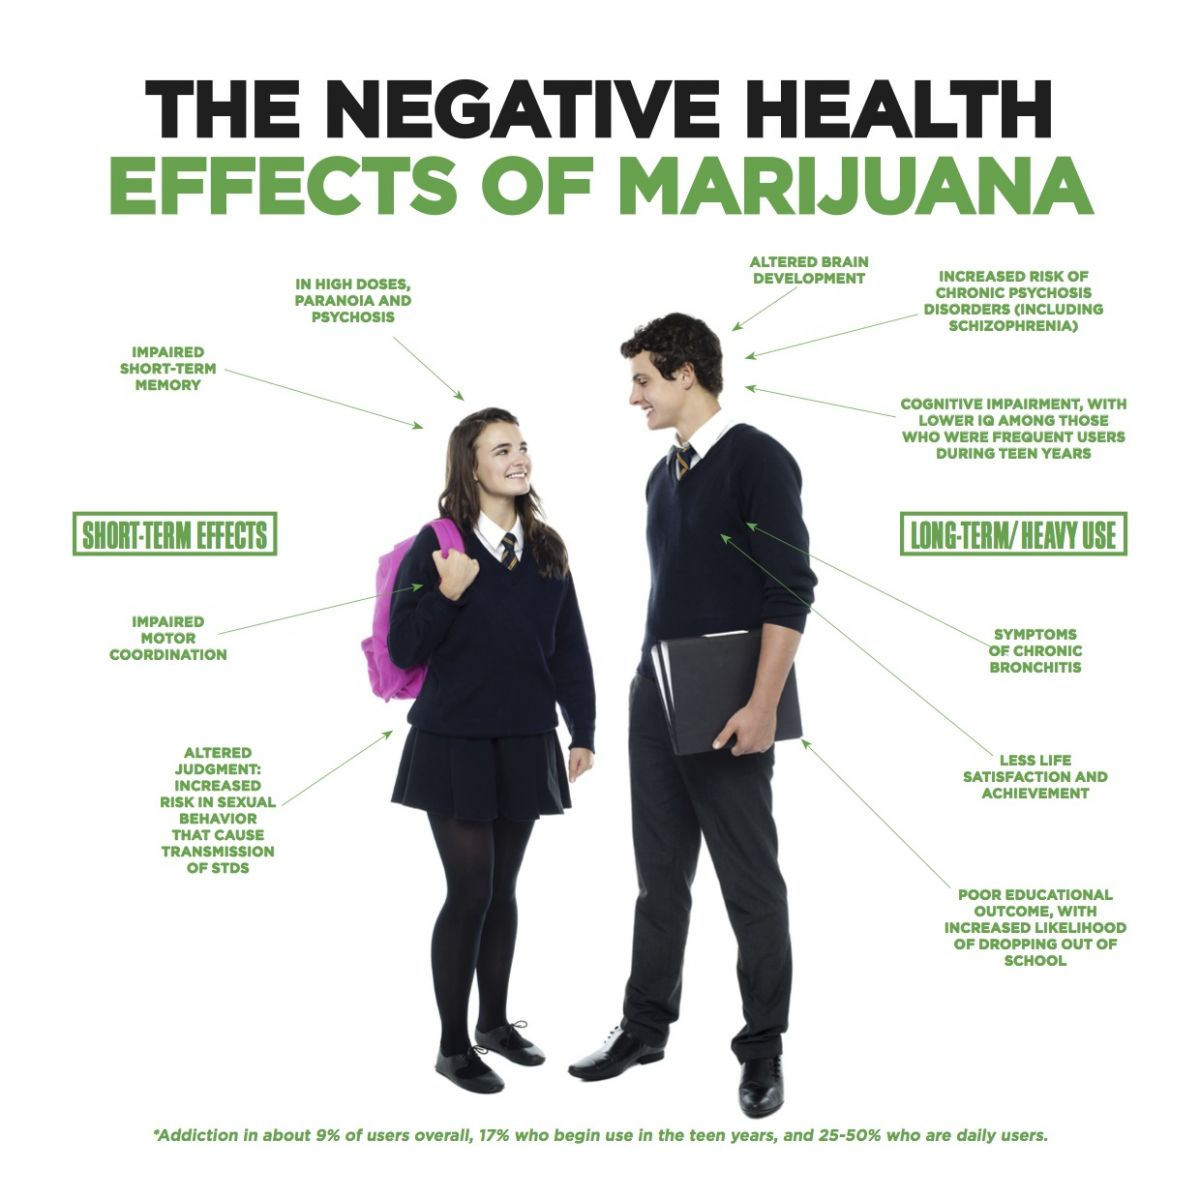 The negative health effects of marijuana